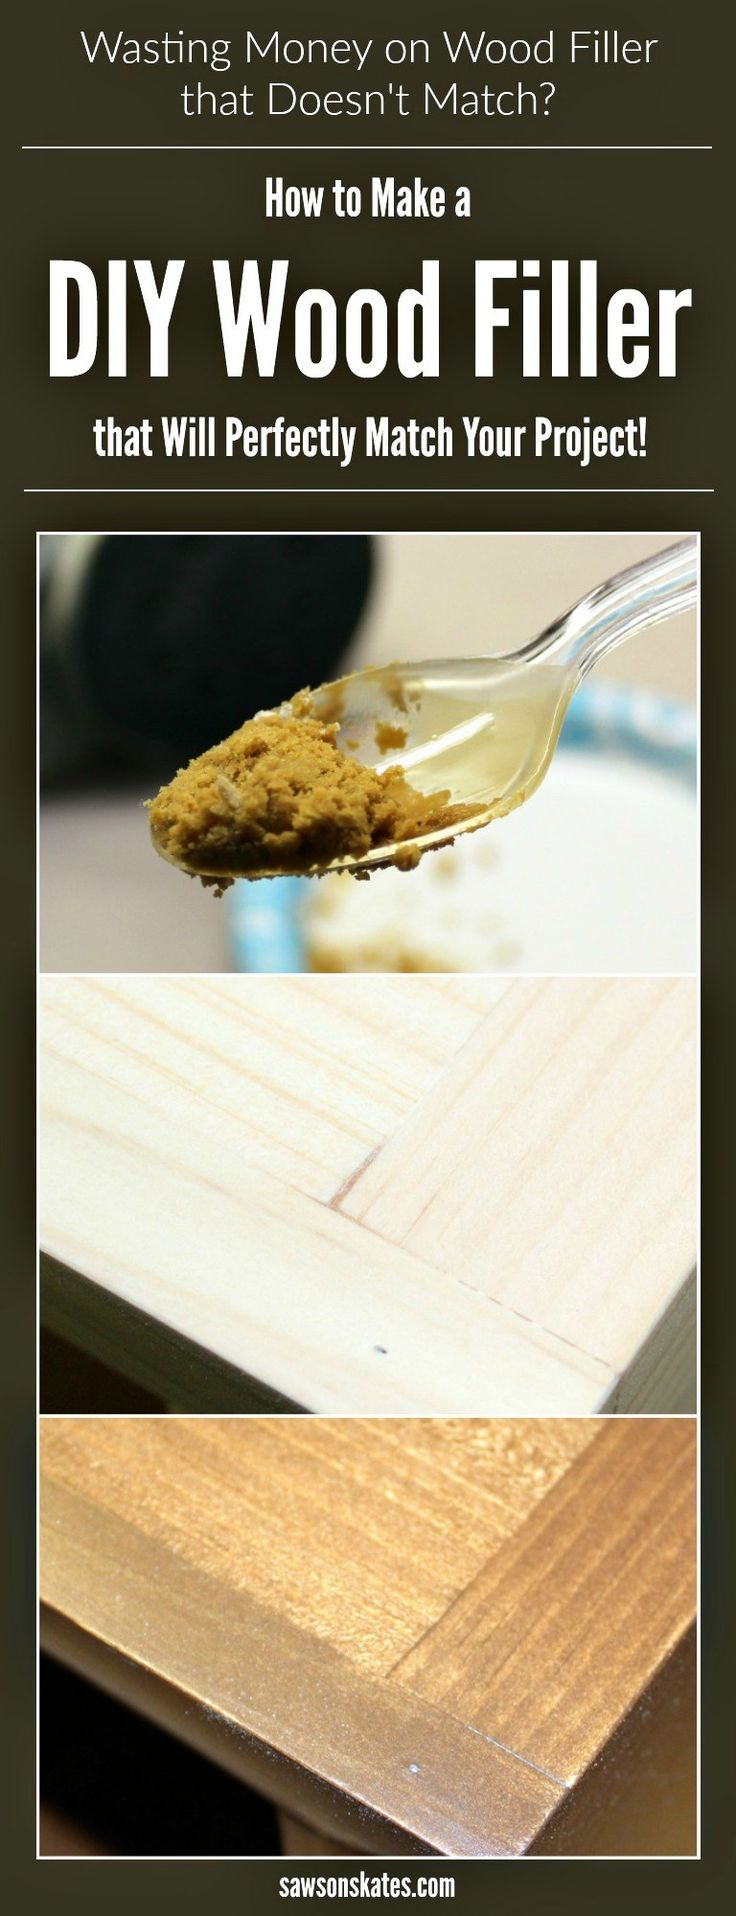 When it comes to staining DIY furniture, store bought wood fillers don't match! This tutorial shows how to make a DIY wood filler perfect for filling nail holes, cracks or gaps in wood. It only requires two ingredients, and best of all, it will match your project!